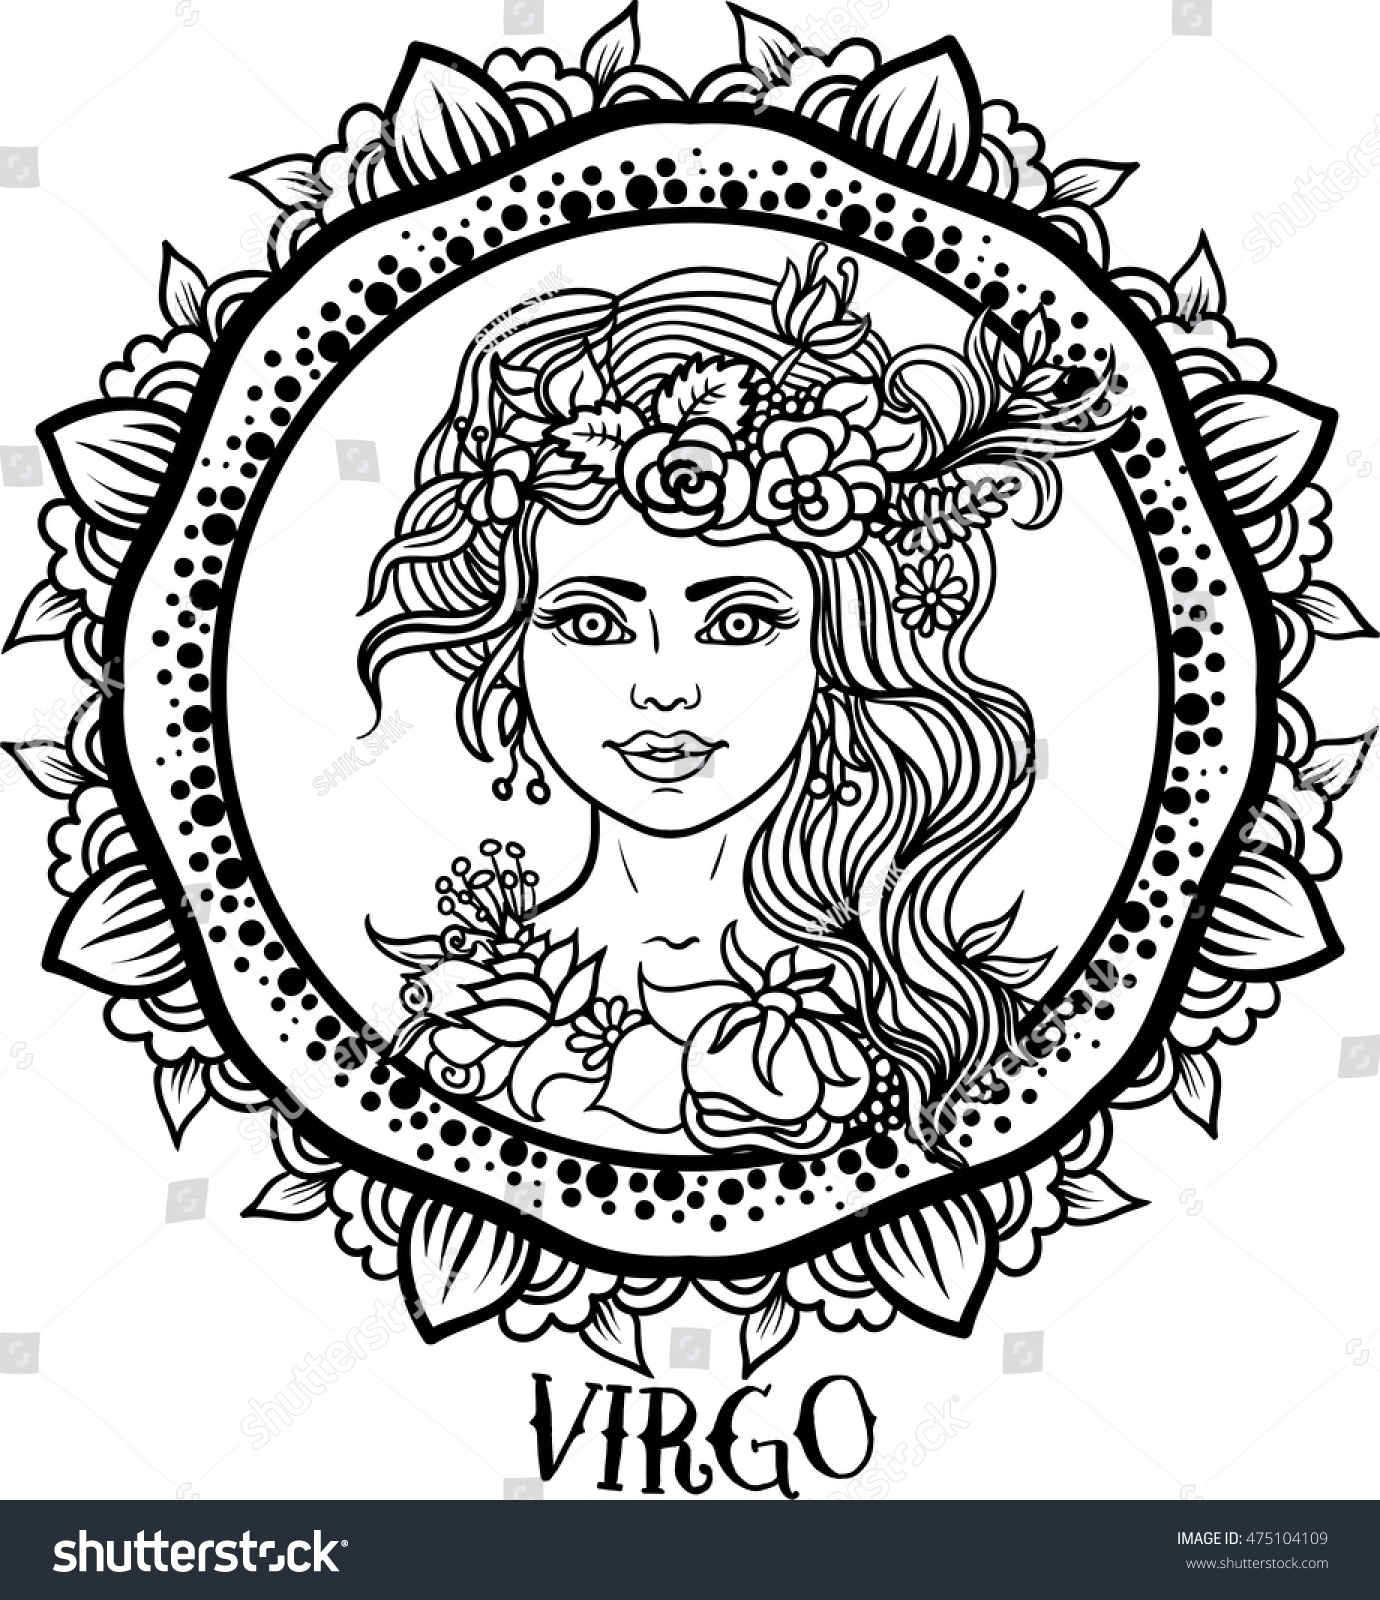 detailed virgo aztec filigree line art stock vector 475104109